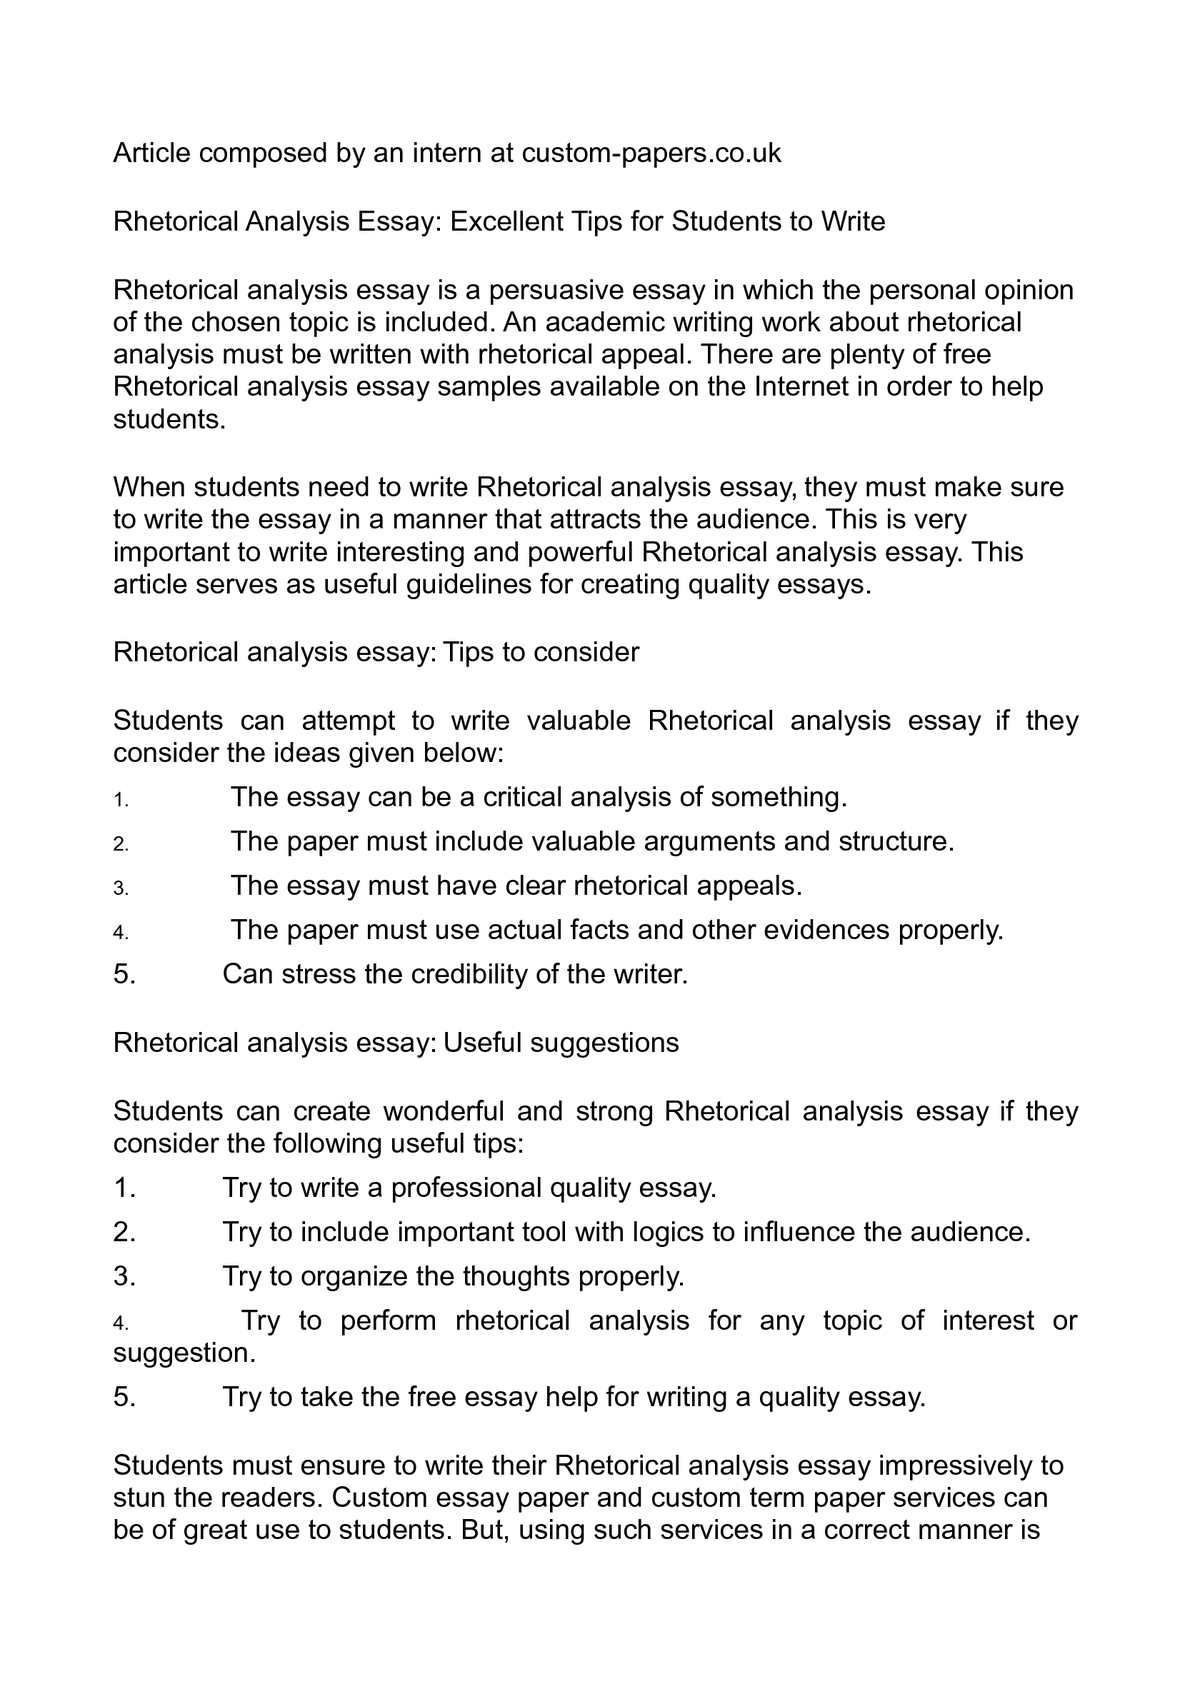 steps for writing a rhetorical analysis essay